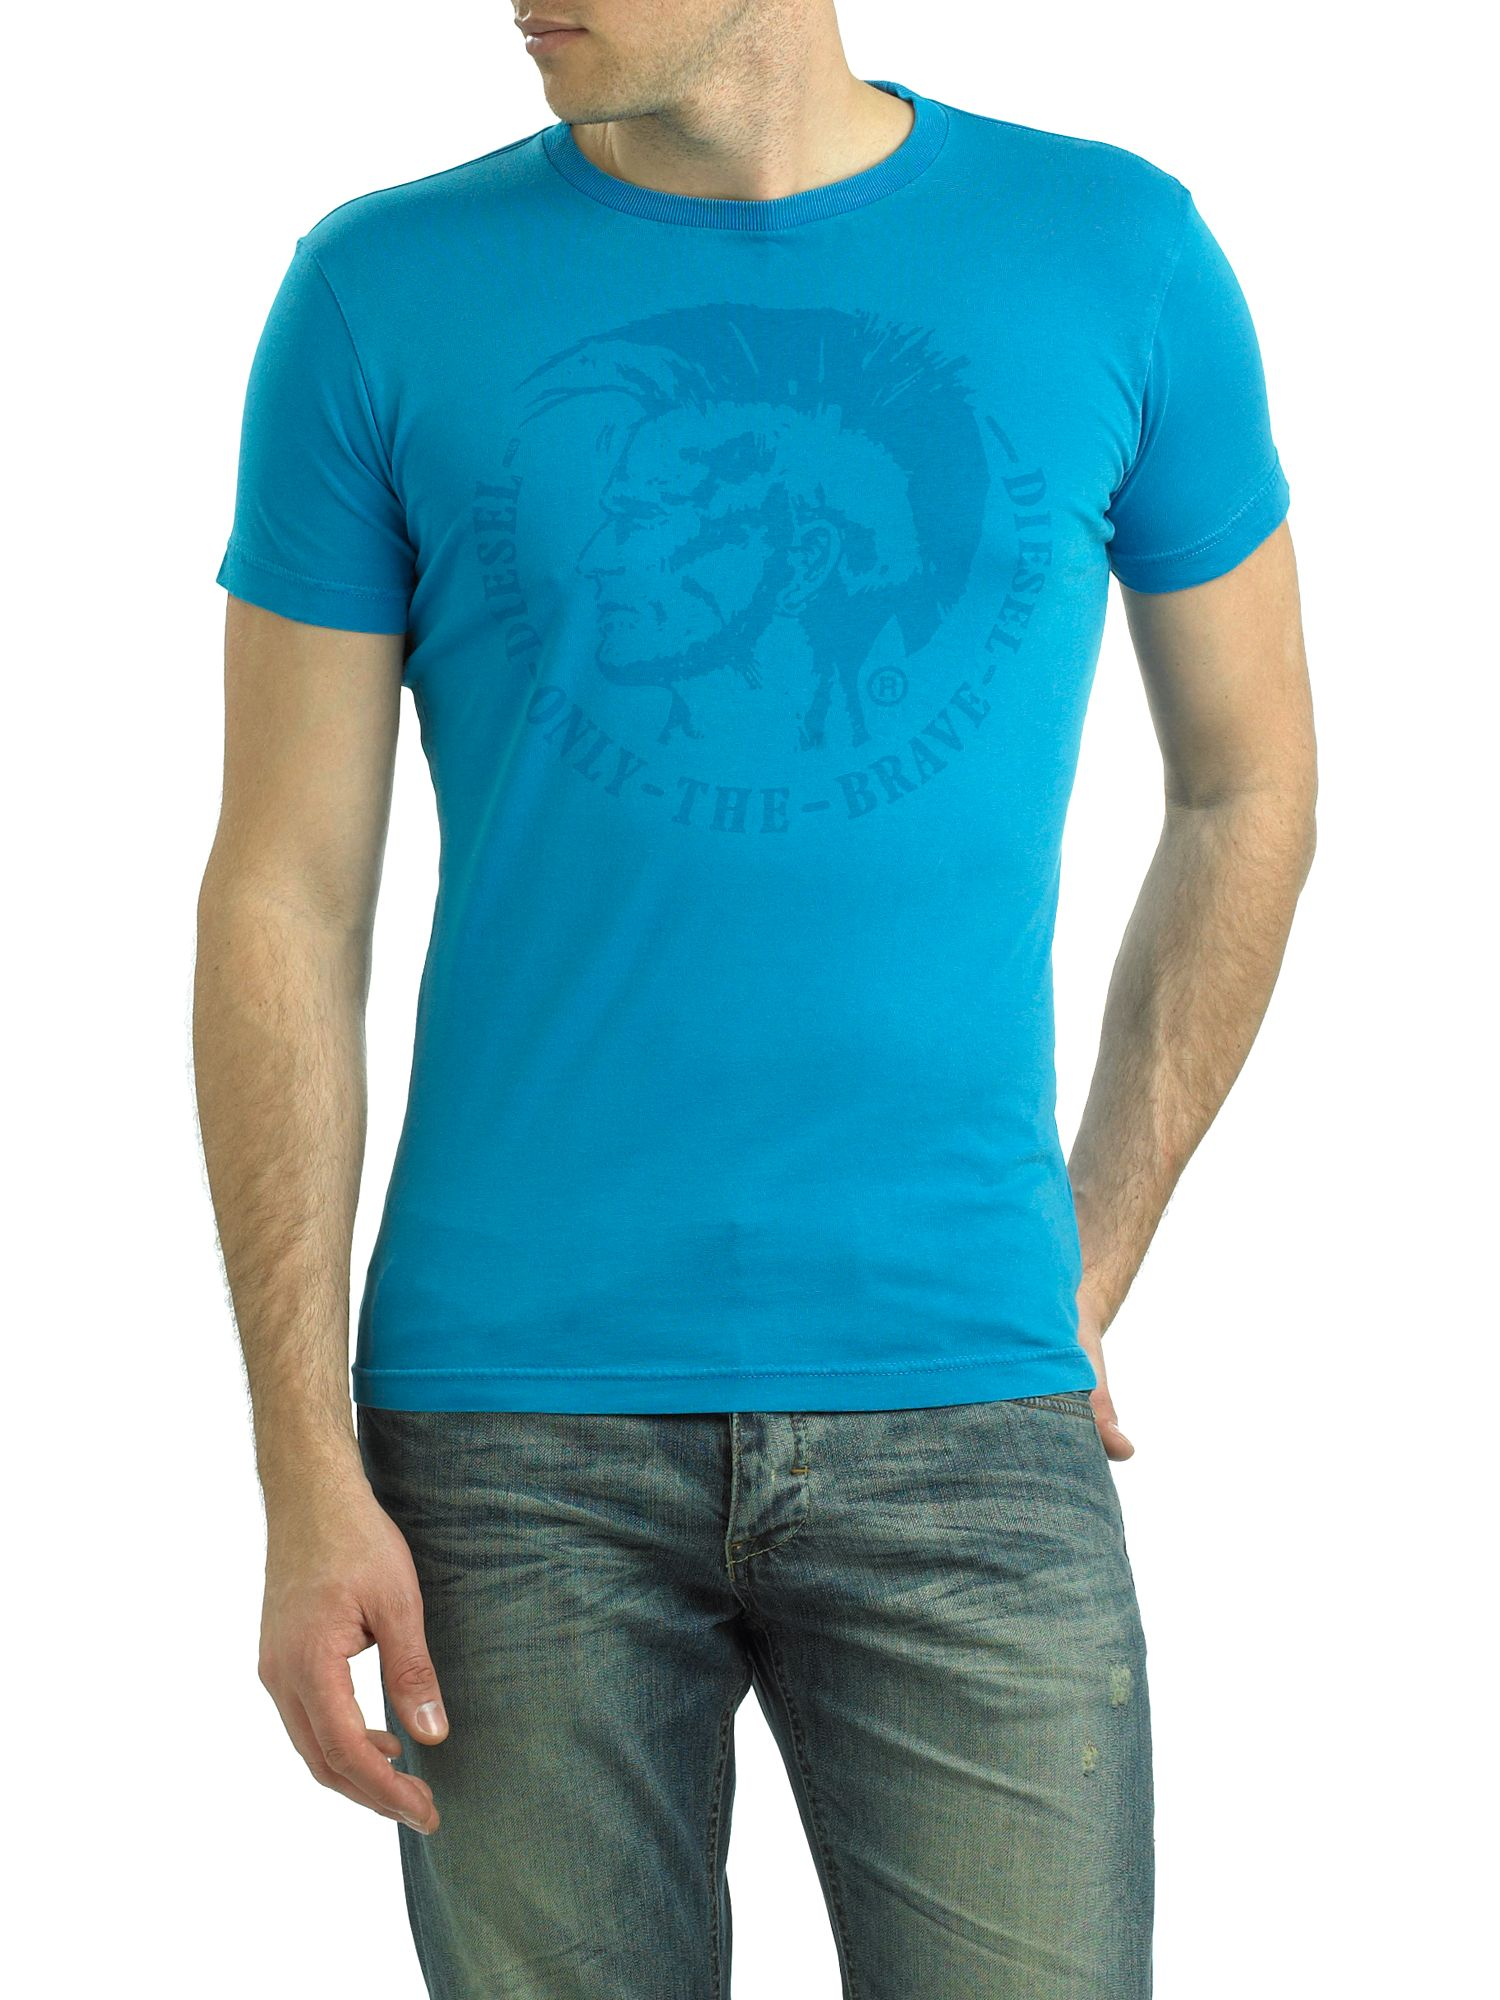 Diesel Mens Diesel T-shirt mohican basic, Blue product image